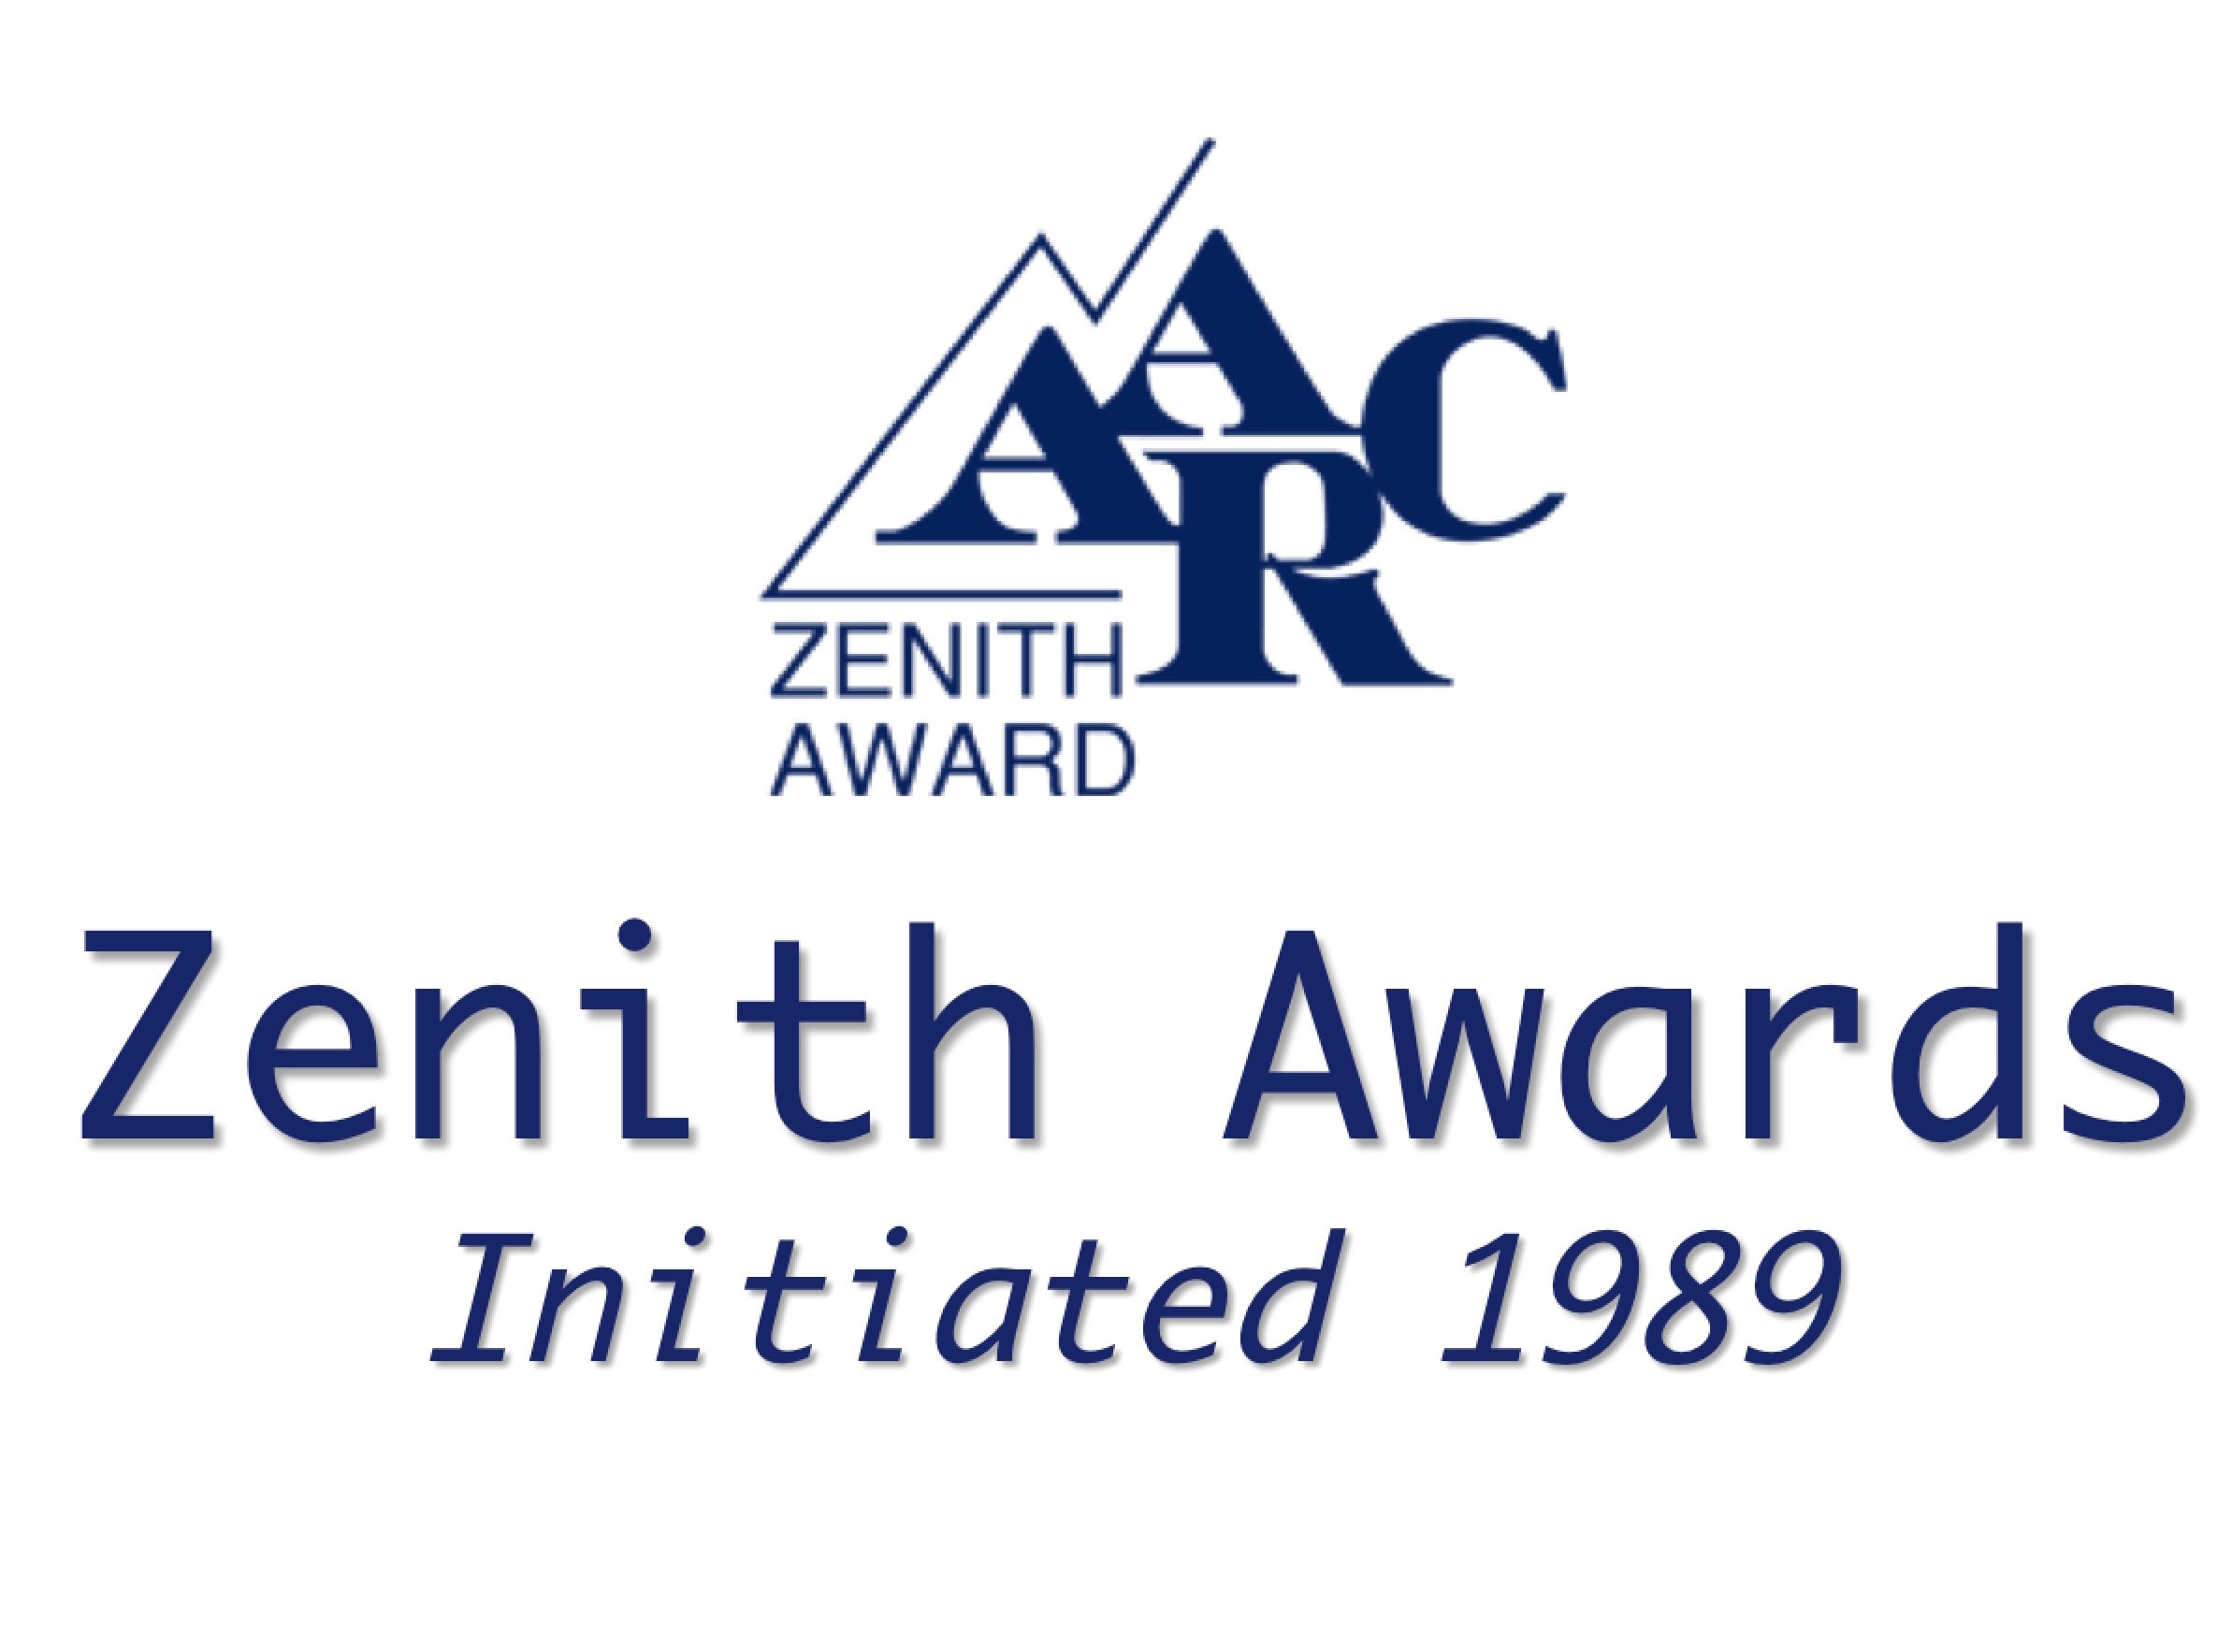 1989 Initial Zenith Awards Presented